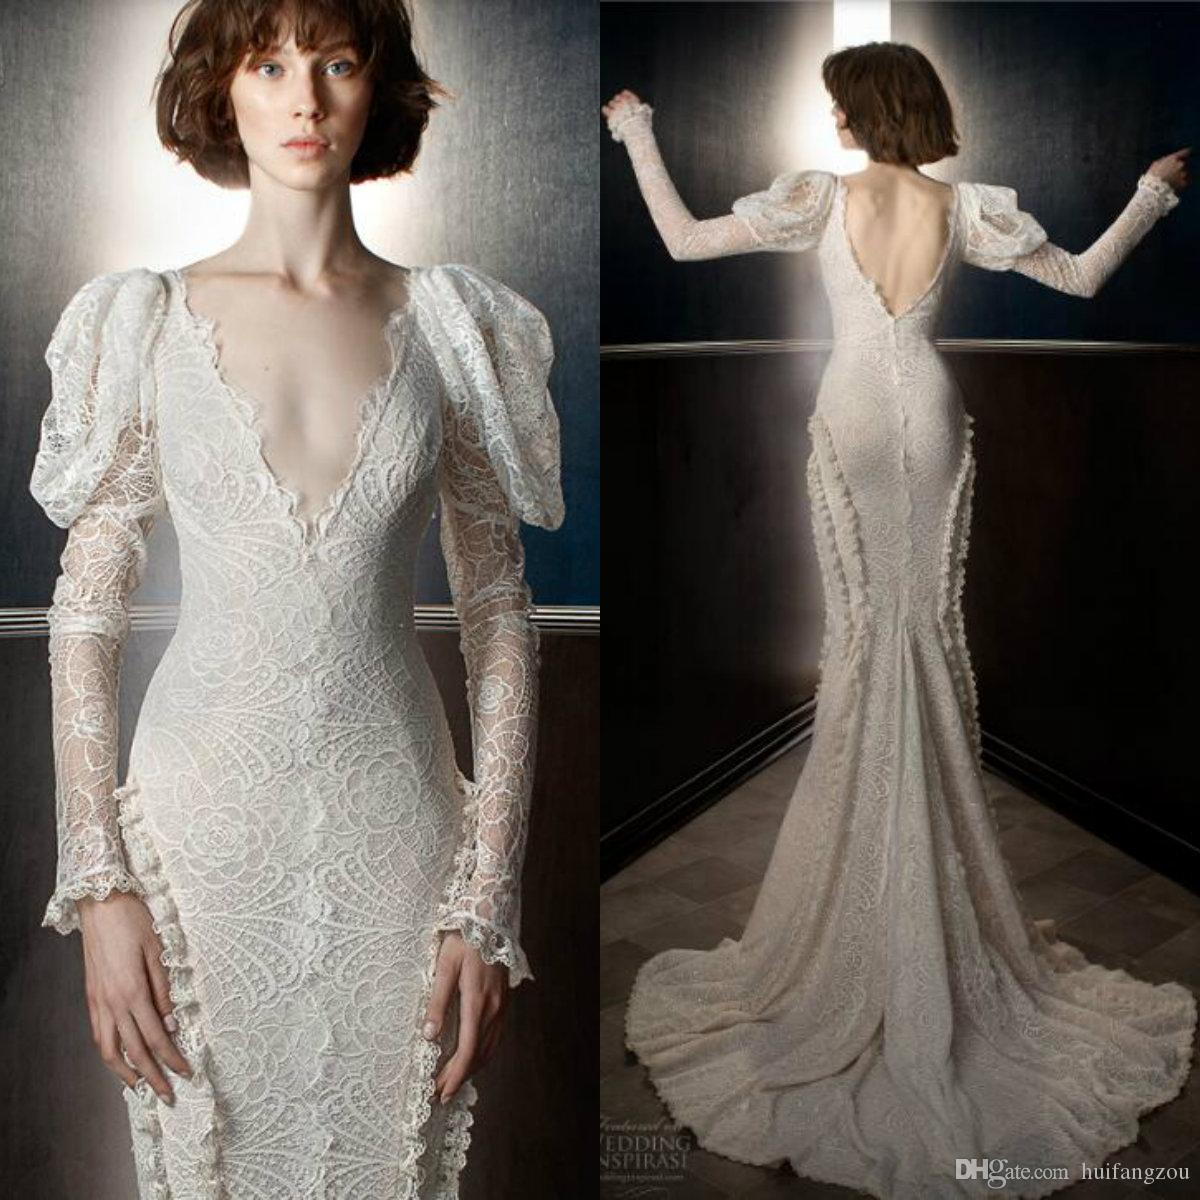 2018 Vintage Mermaid Wedding Dress Full Lace V Neck Long Sleeves Wedding Dresses Custom Made Bridal Gowns B.N